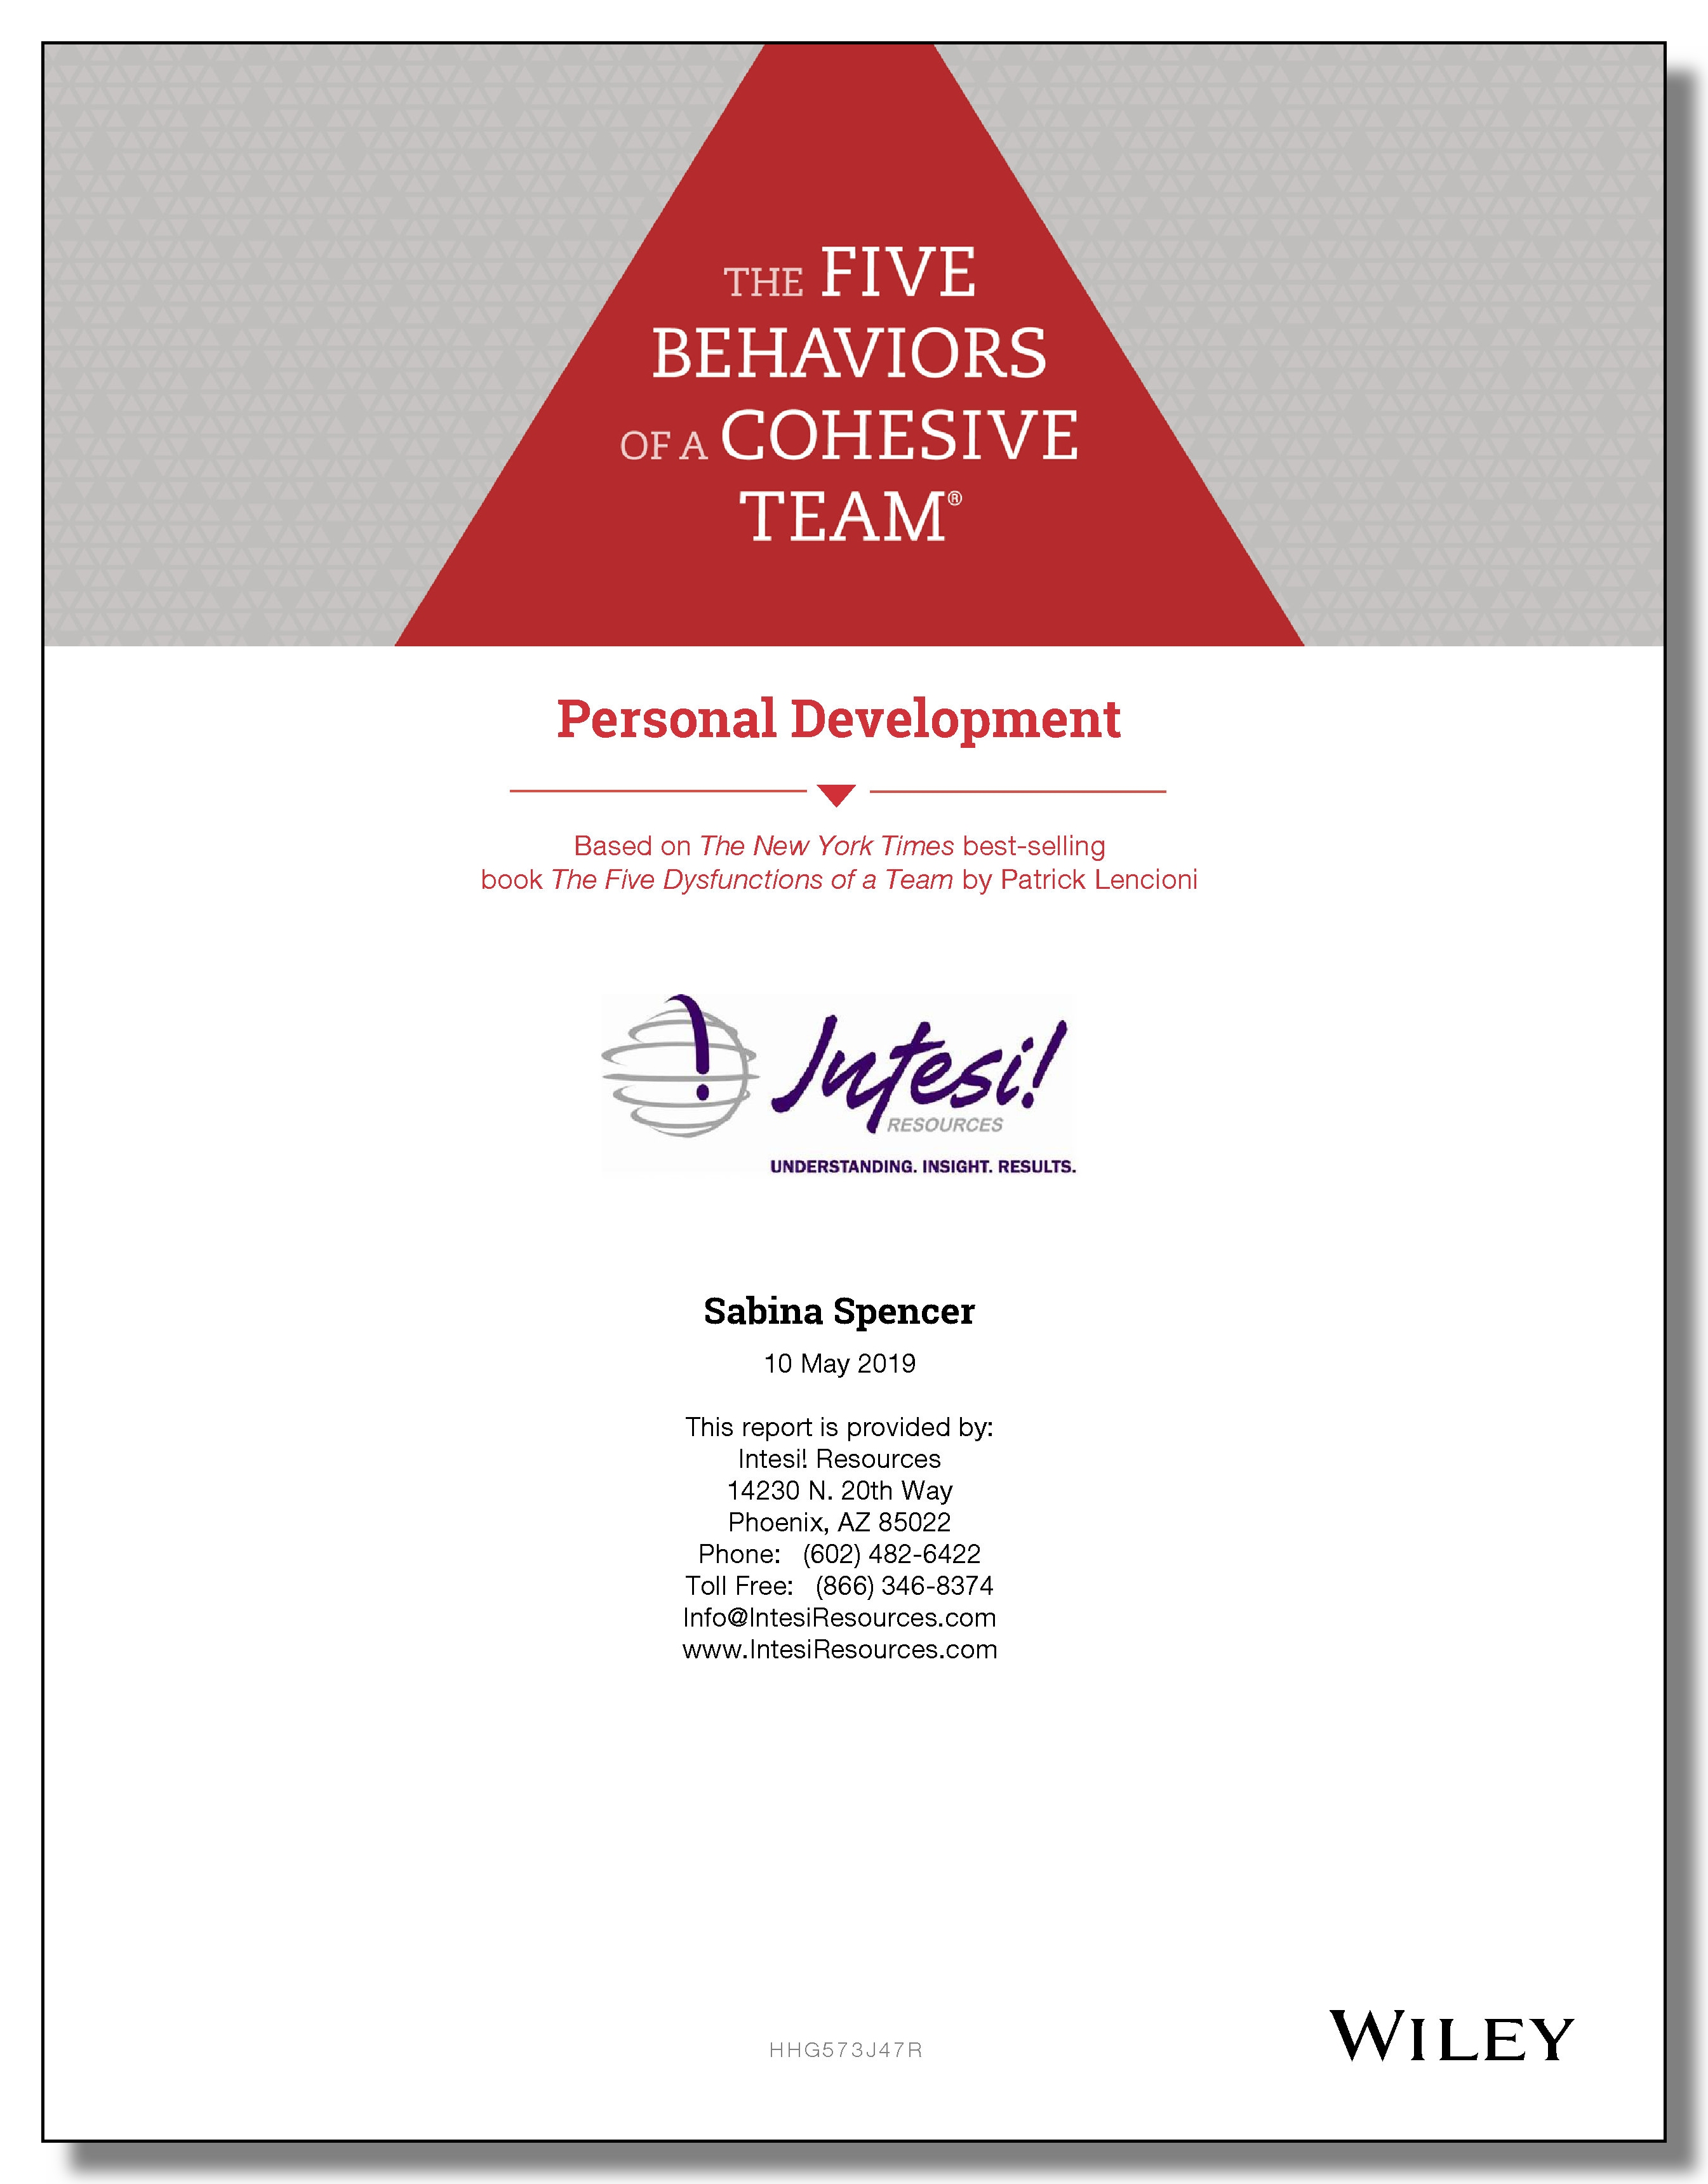 Five Behaviors Personal Development Sample Report